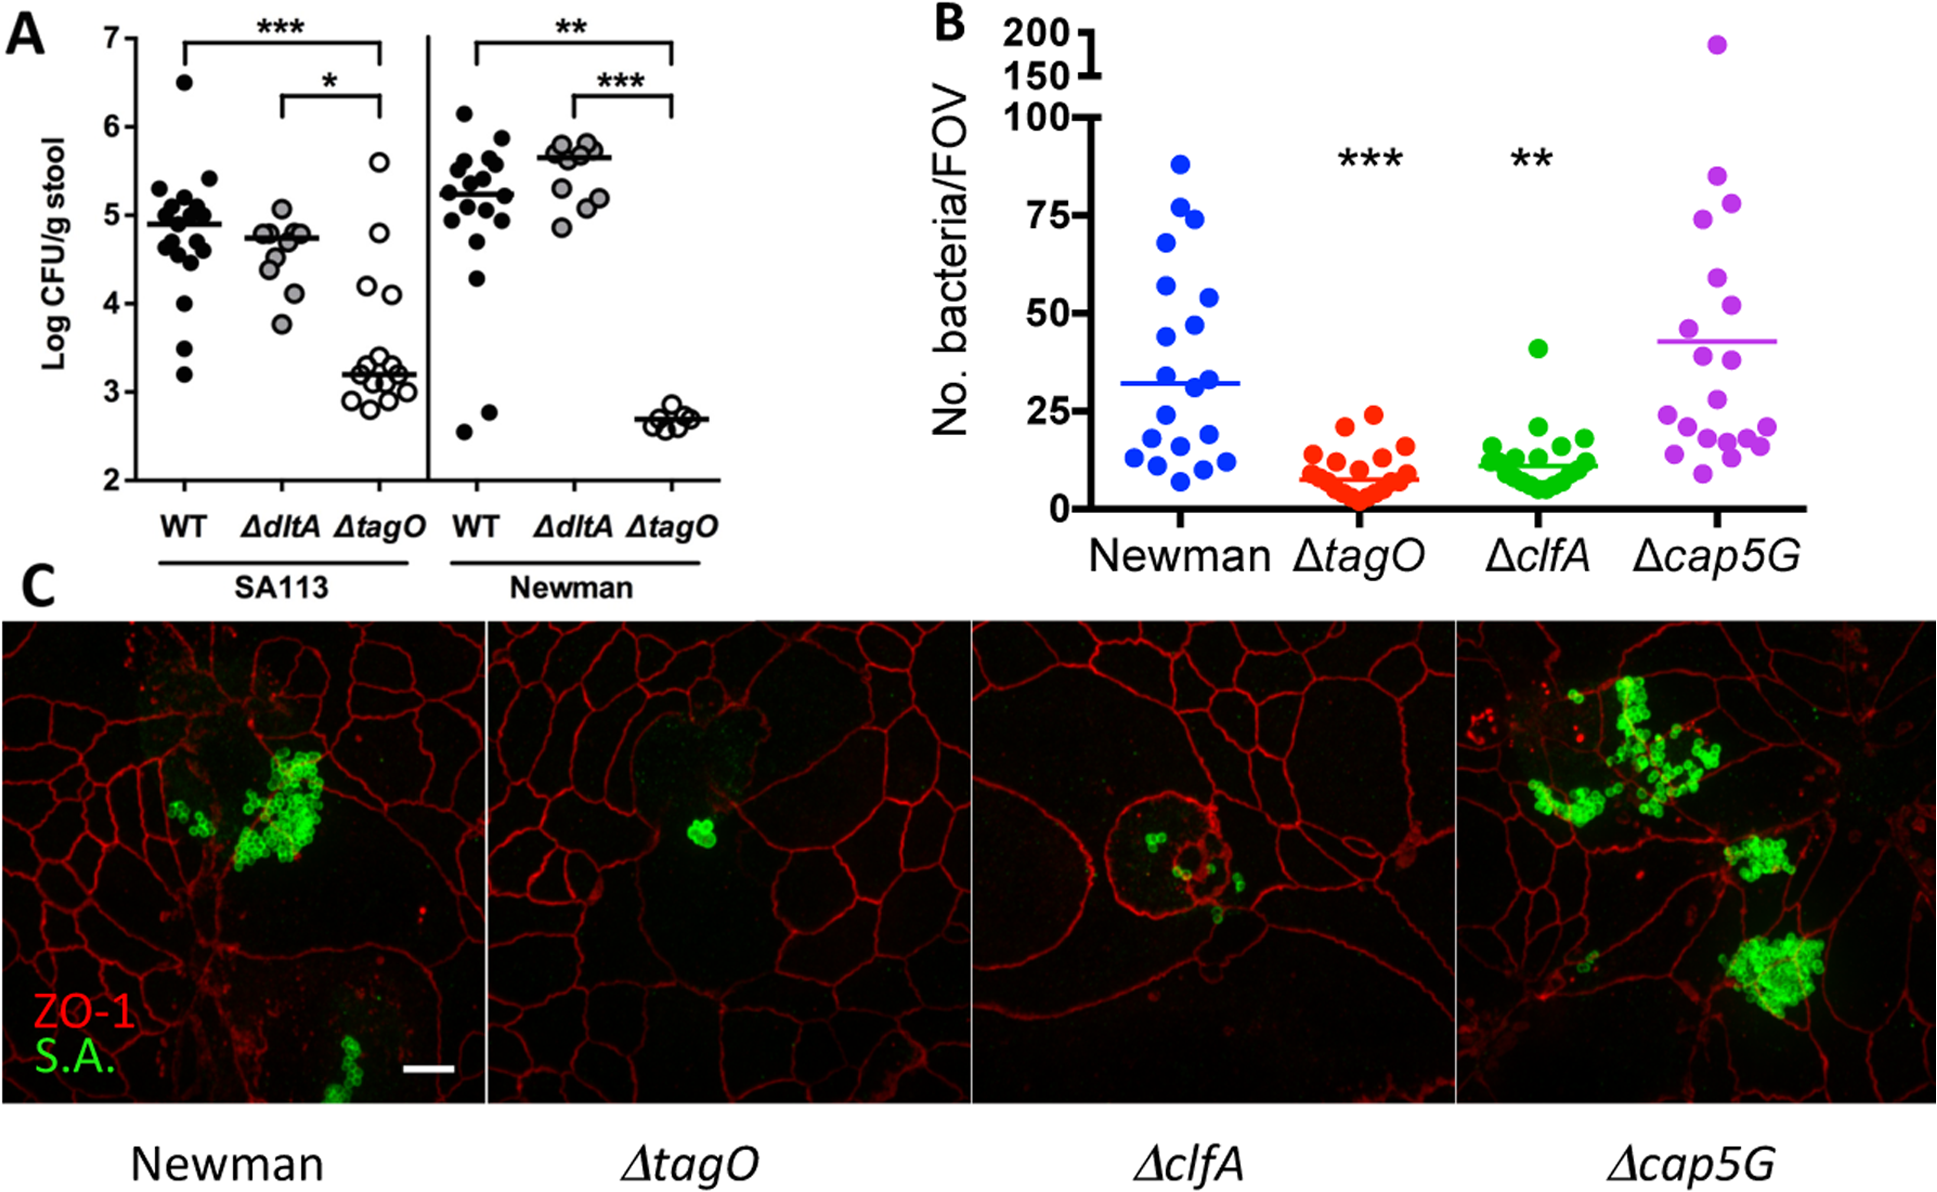 Effects of WTA on <i>S. aureus</i> GI colonization and the influence of surface antigens on in vitro adherence of <i>S. aureus</i> to T84 cells.